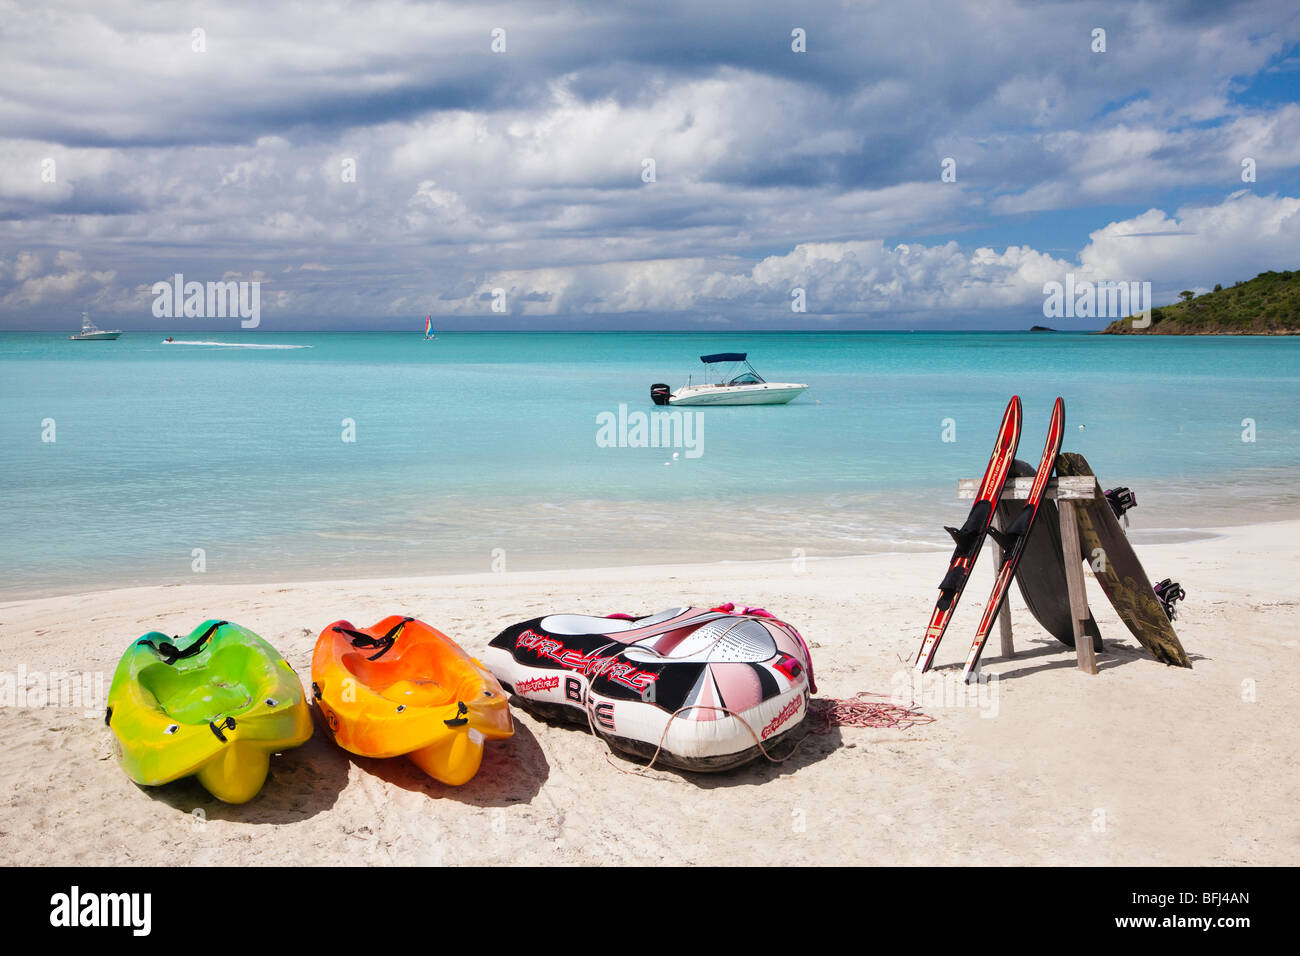 Water skis resting on a board and holiday styled kayaks, on the beach at Jolly Bay, Antigua, West Indies, Caribbean - Stock Image